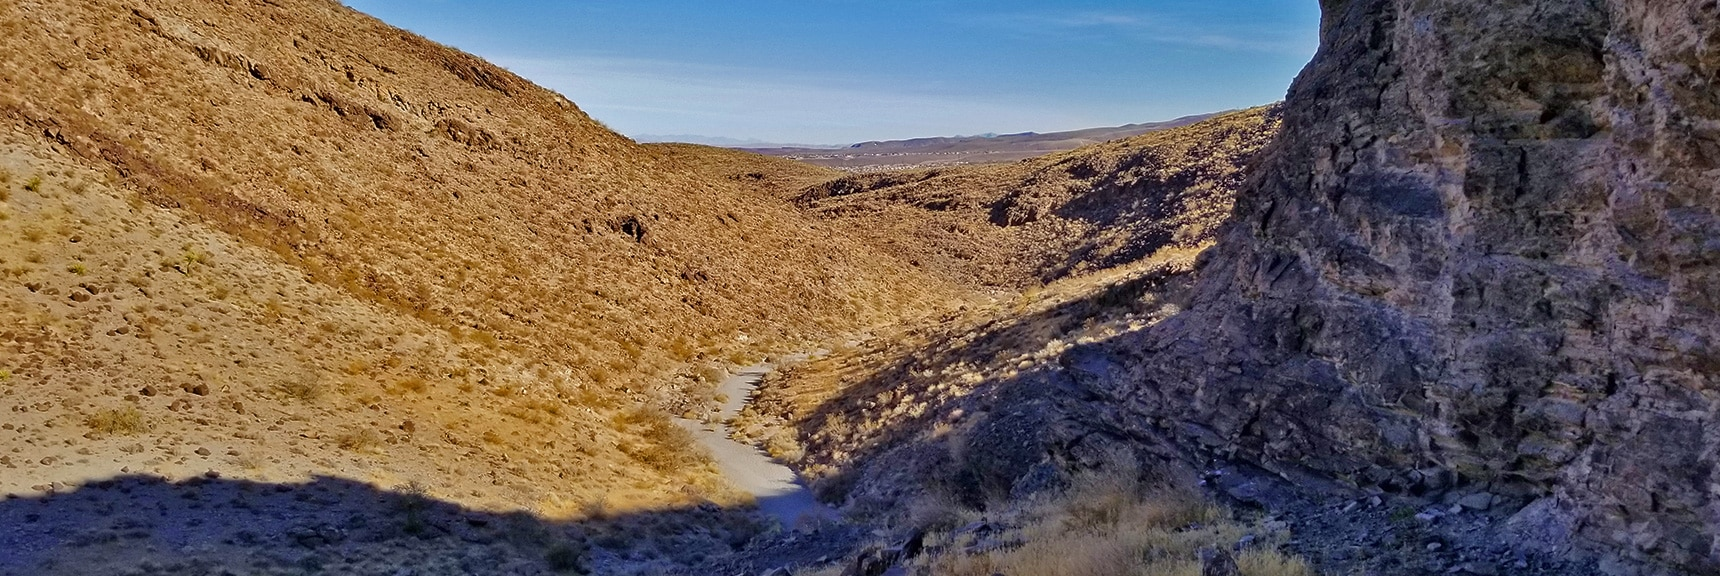 Petroglyphs Scattered on Small Boulders to the Left (Heading Down Canyon) | Petroglyph Canyon | Sloan Canyon National Conservation Area, Nevada